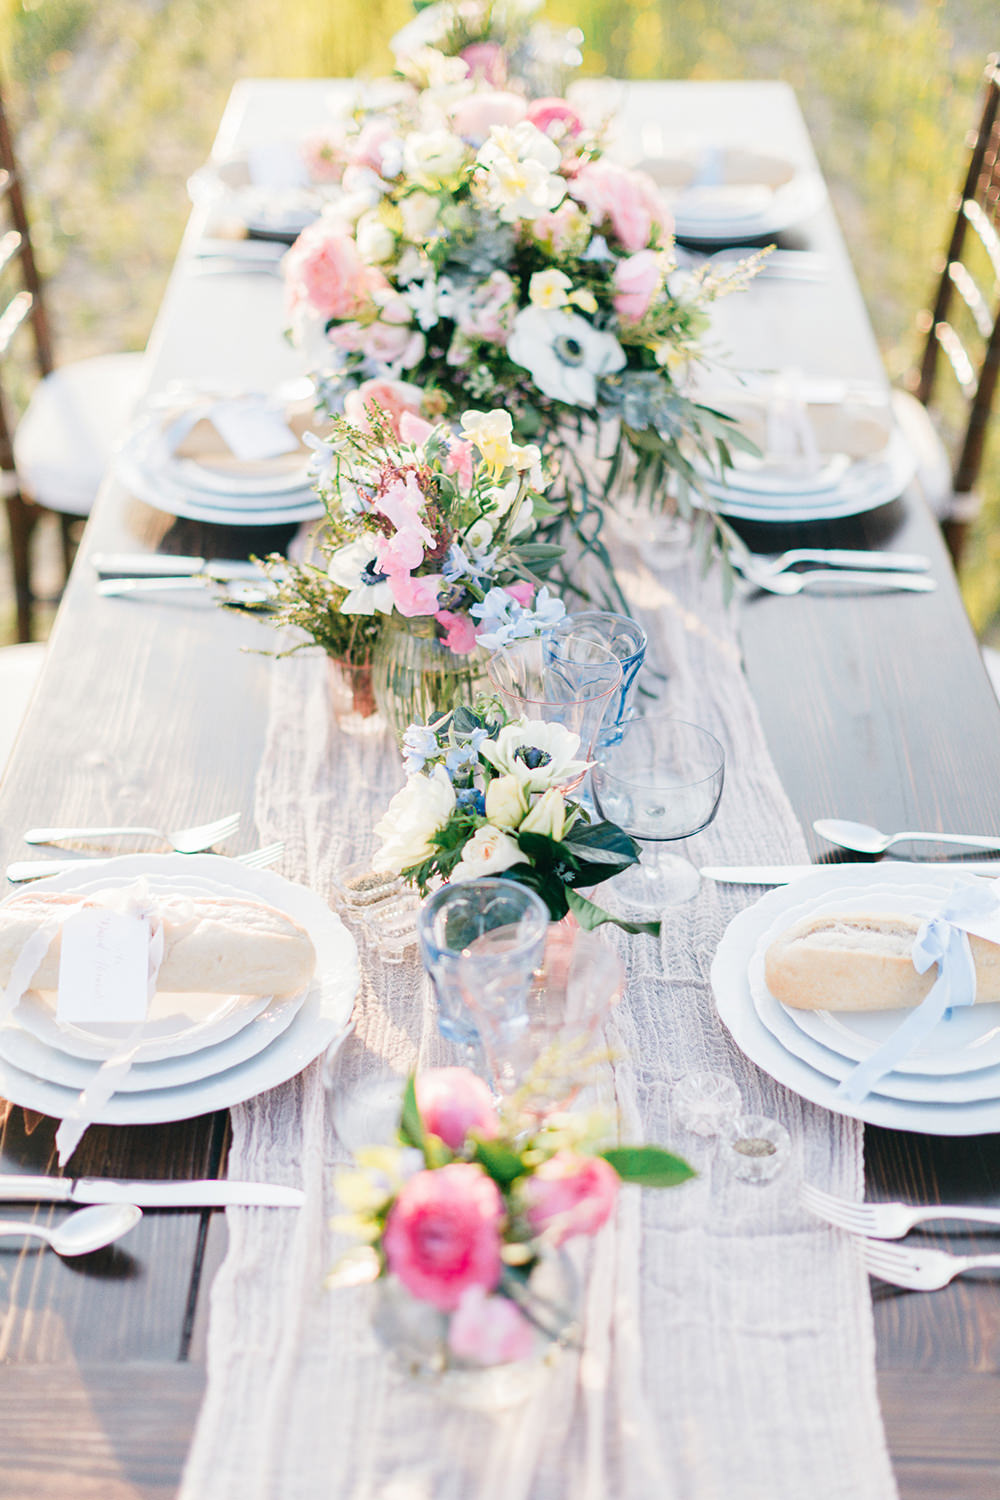 wedding tablescapes - photo by Katie McGihon Photography https://ruffledblog.com/spring-almond-orchard-wedding-inspiration